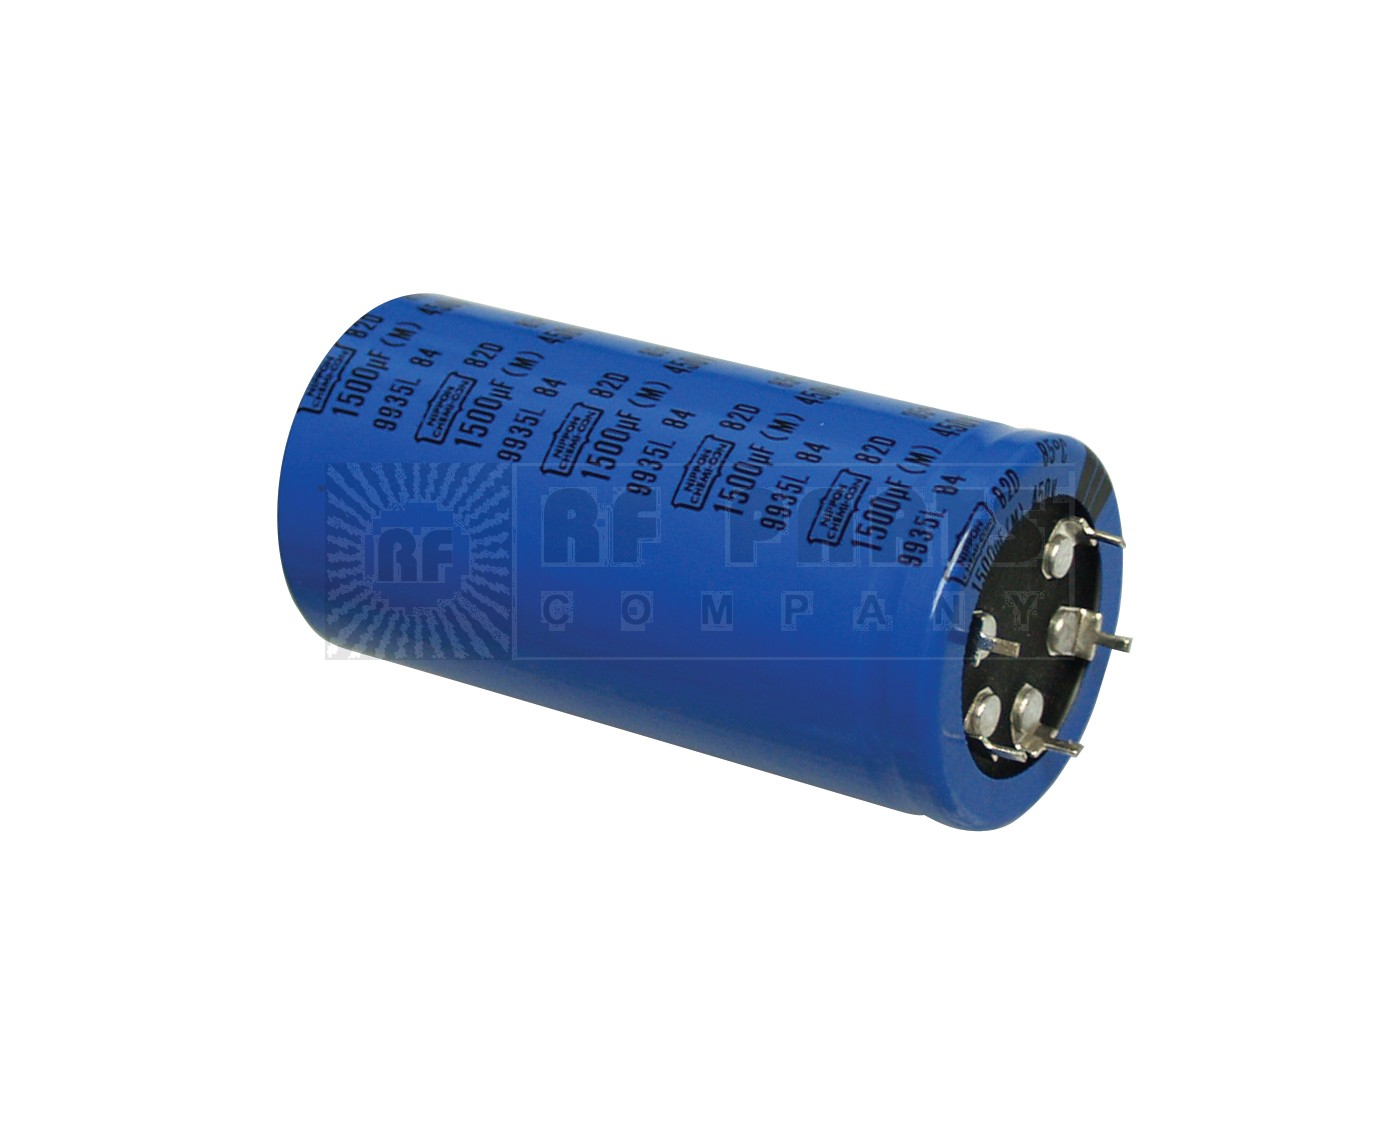 82D1500-450 Capacitor, Electrolytic, 1500uf, 450v, Chemicon